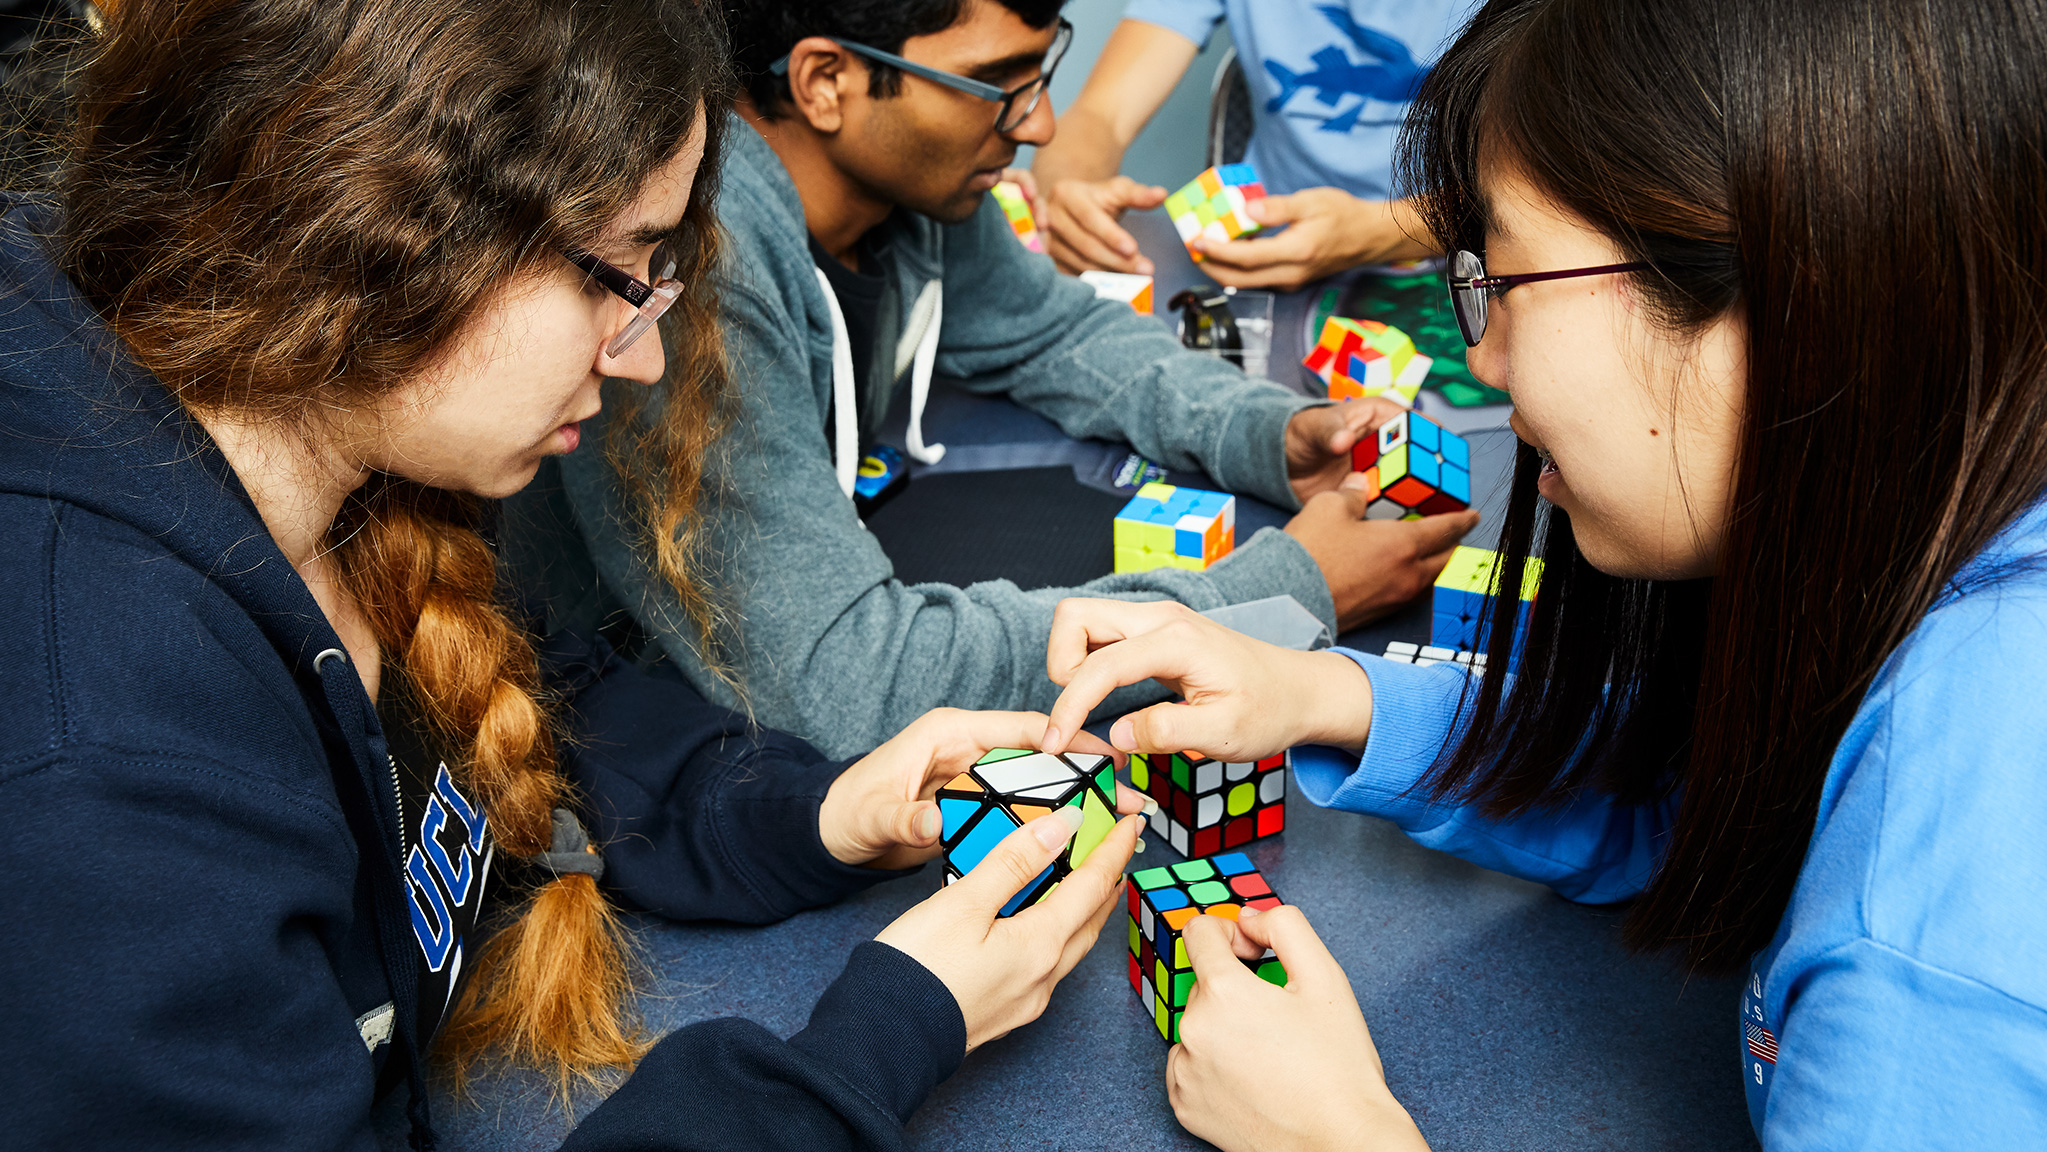 Cubing Club at UCLA members pose together with their Rubik's Cubes.